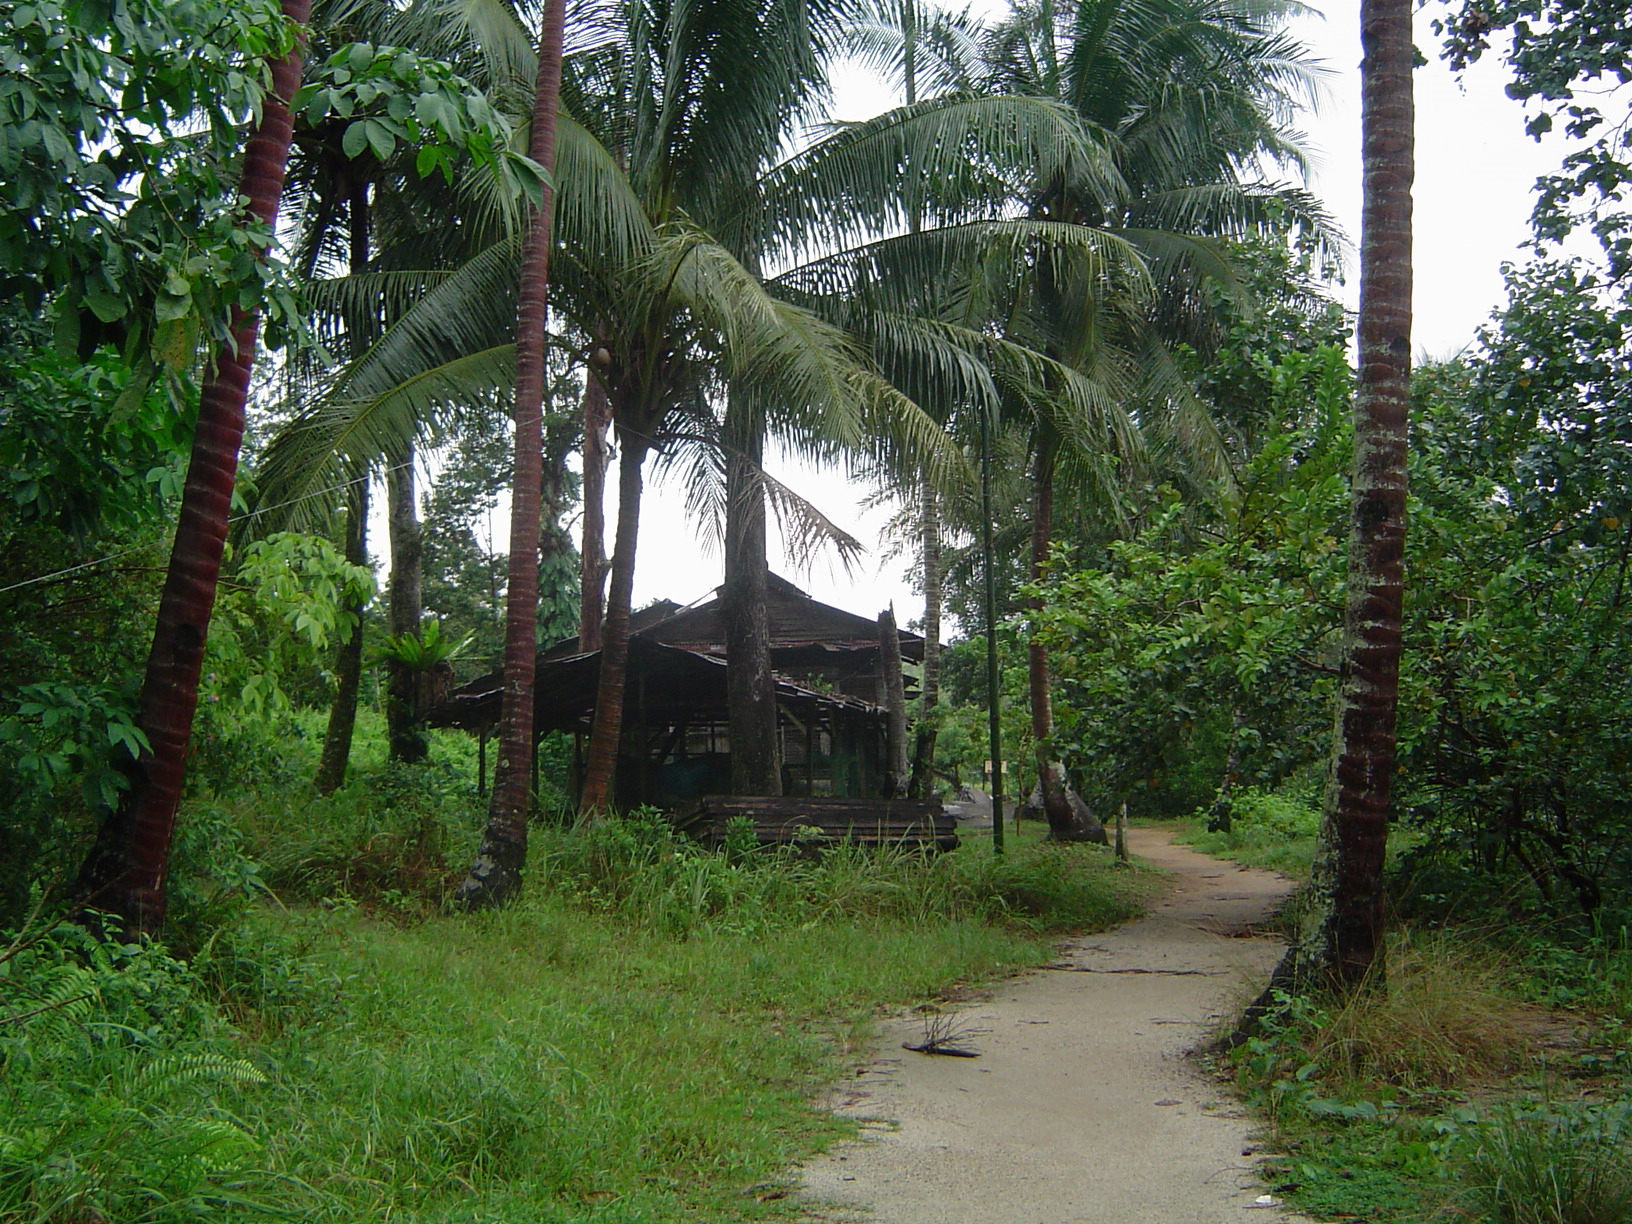 Ve may bay di Pulau Ubin vung dat bi lang quen